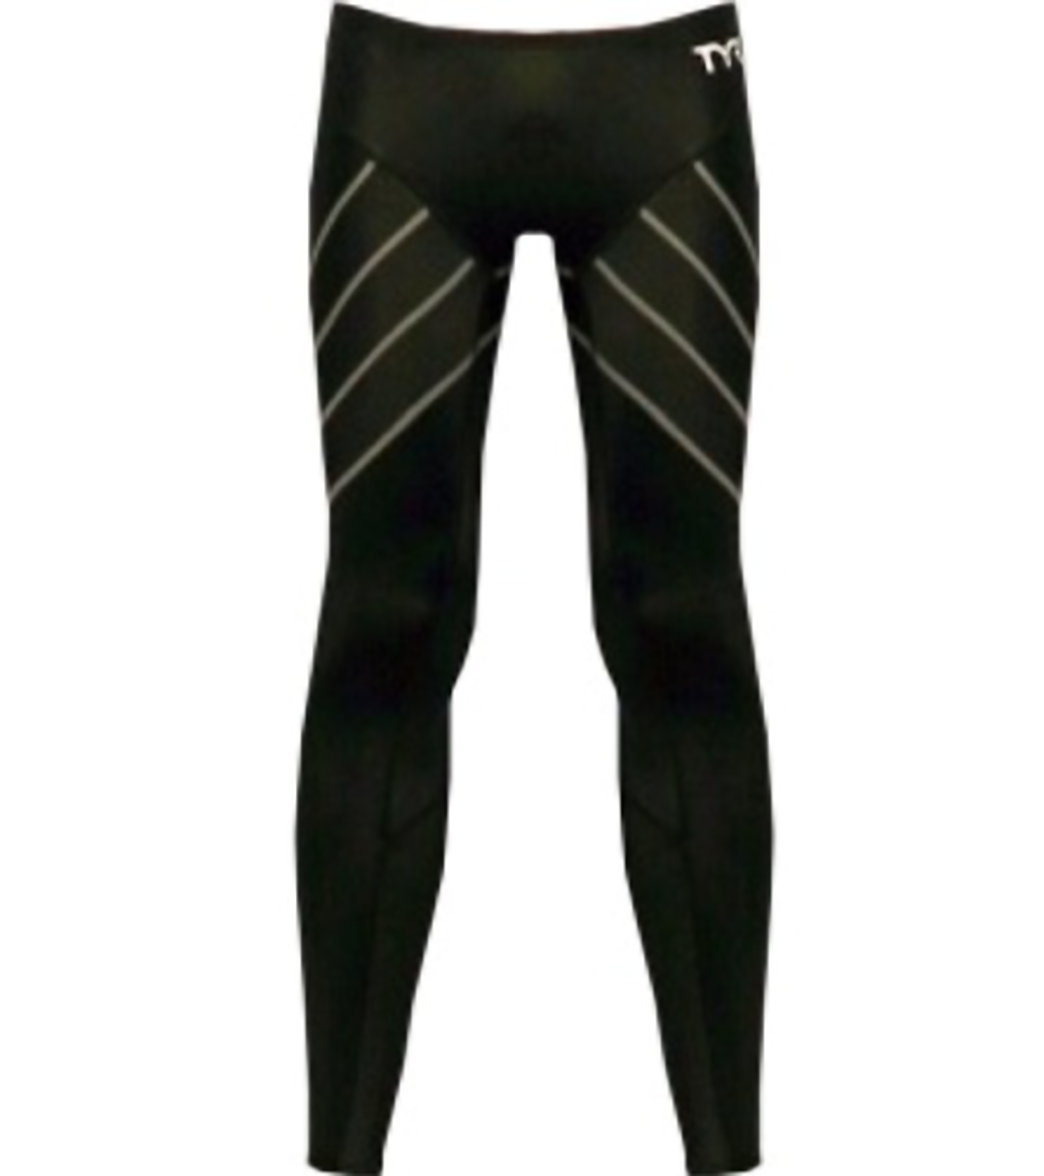 TYR Aquapel Male Tight Tech Suit Swimsuit at SwimOutlet.com - Free ... 39719d099